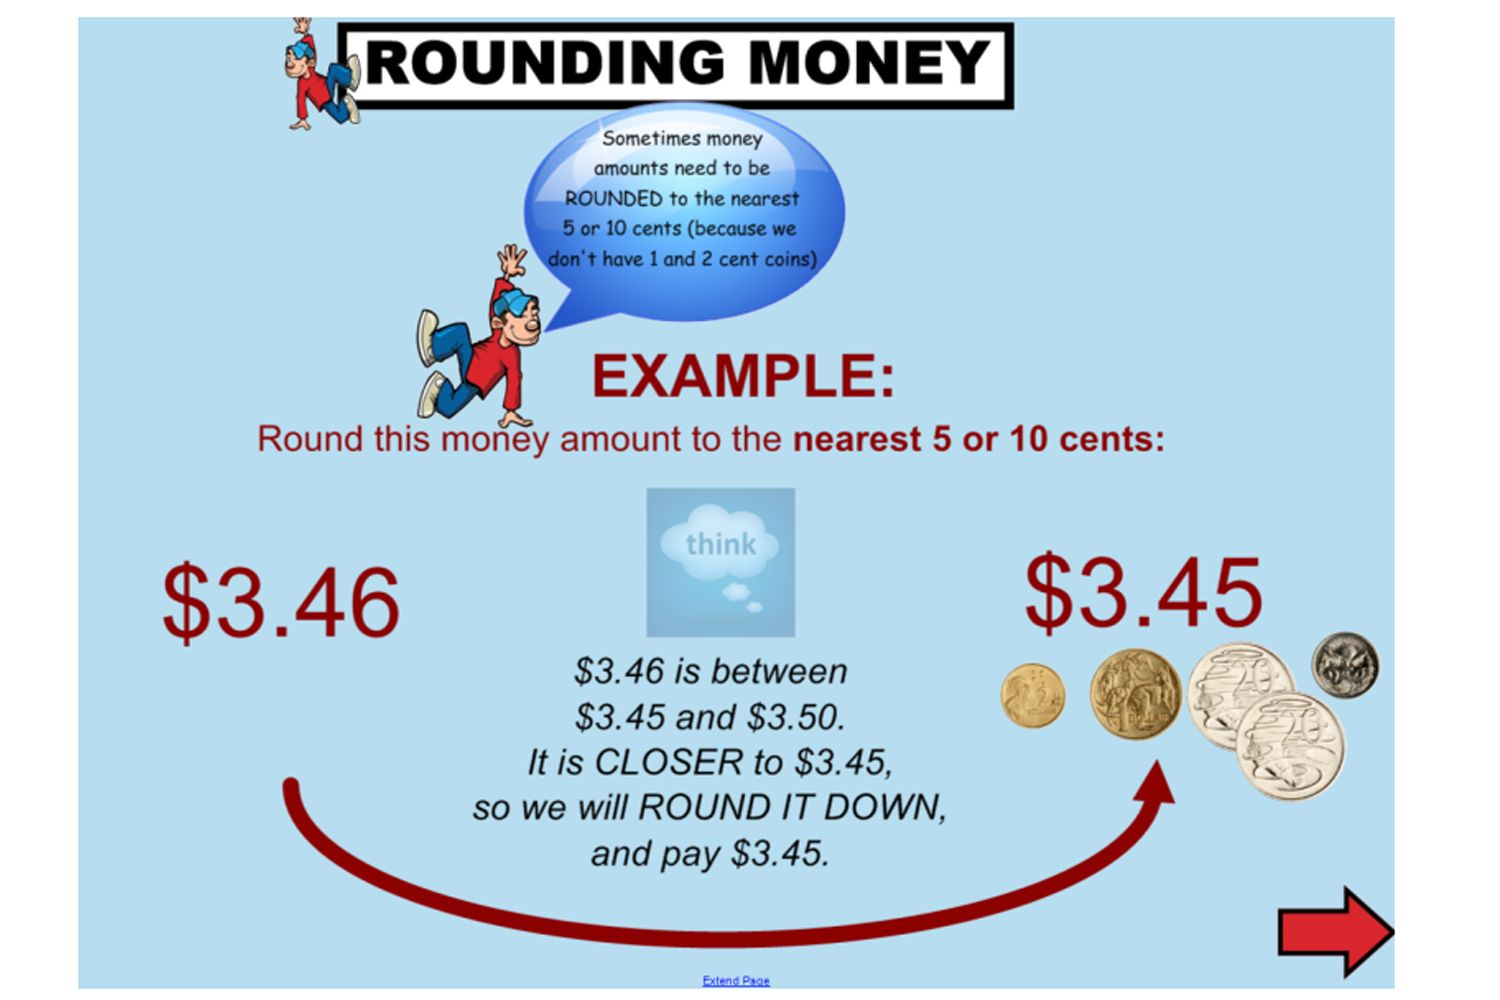 worksheet Rounding Money Worksheet this great iwb lesson shows students how to round money amounts the nearest 5 or